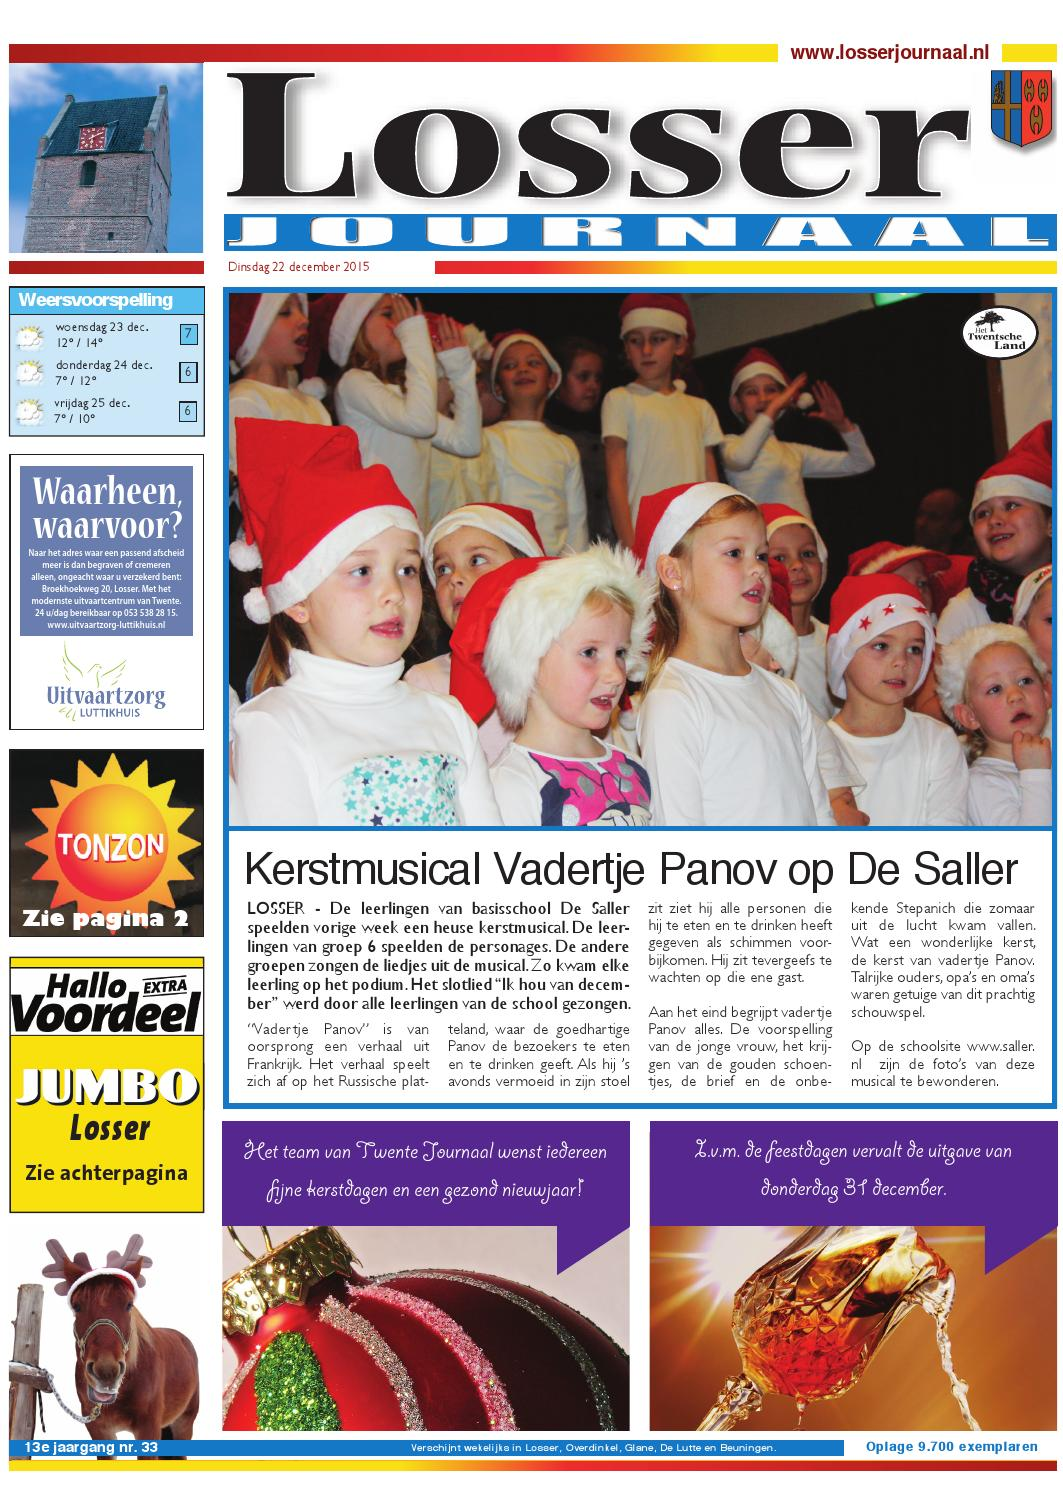 Waarheen Waarvoor Losser Journaal 23 December By Twente Journaal Issuu